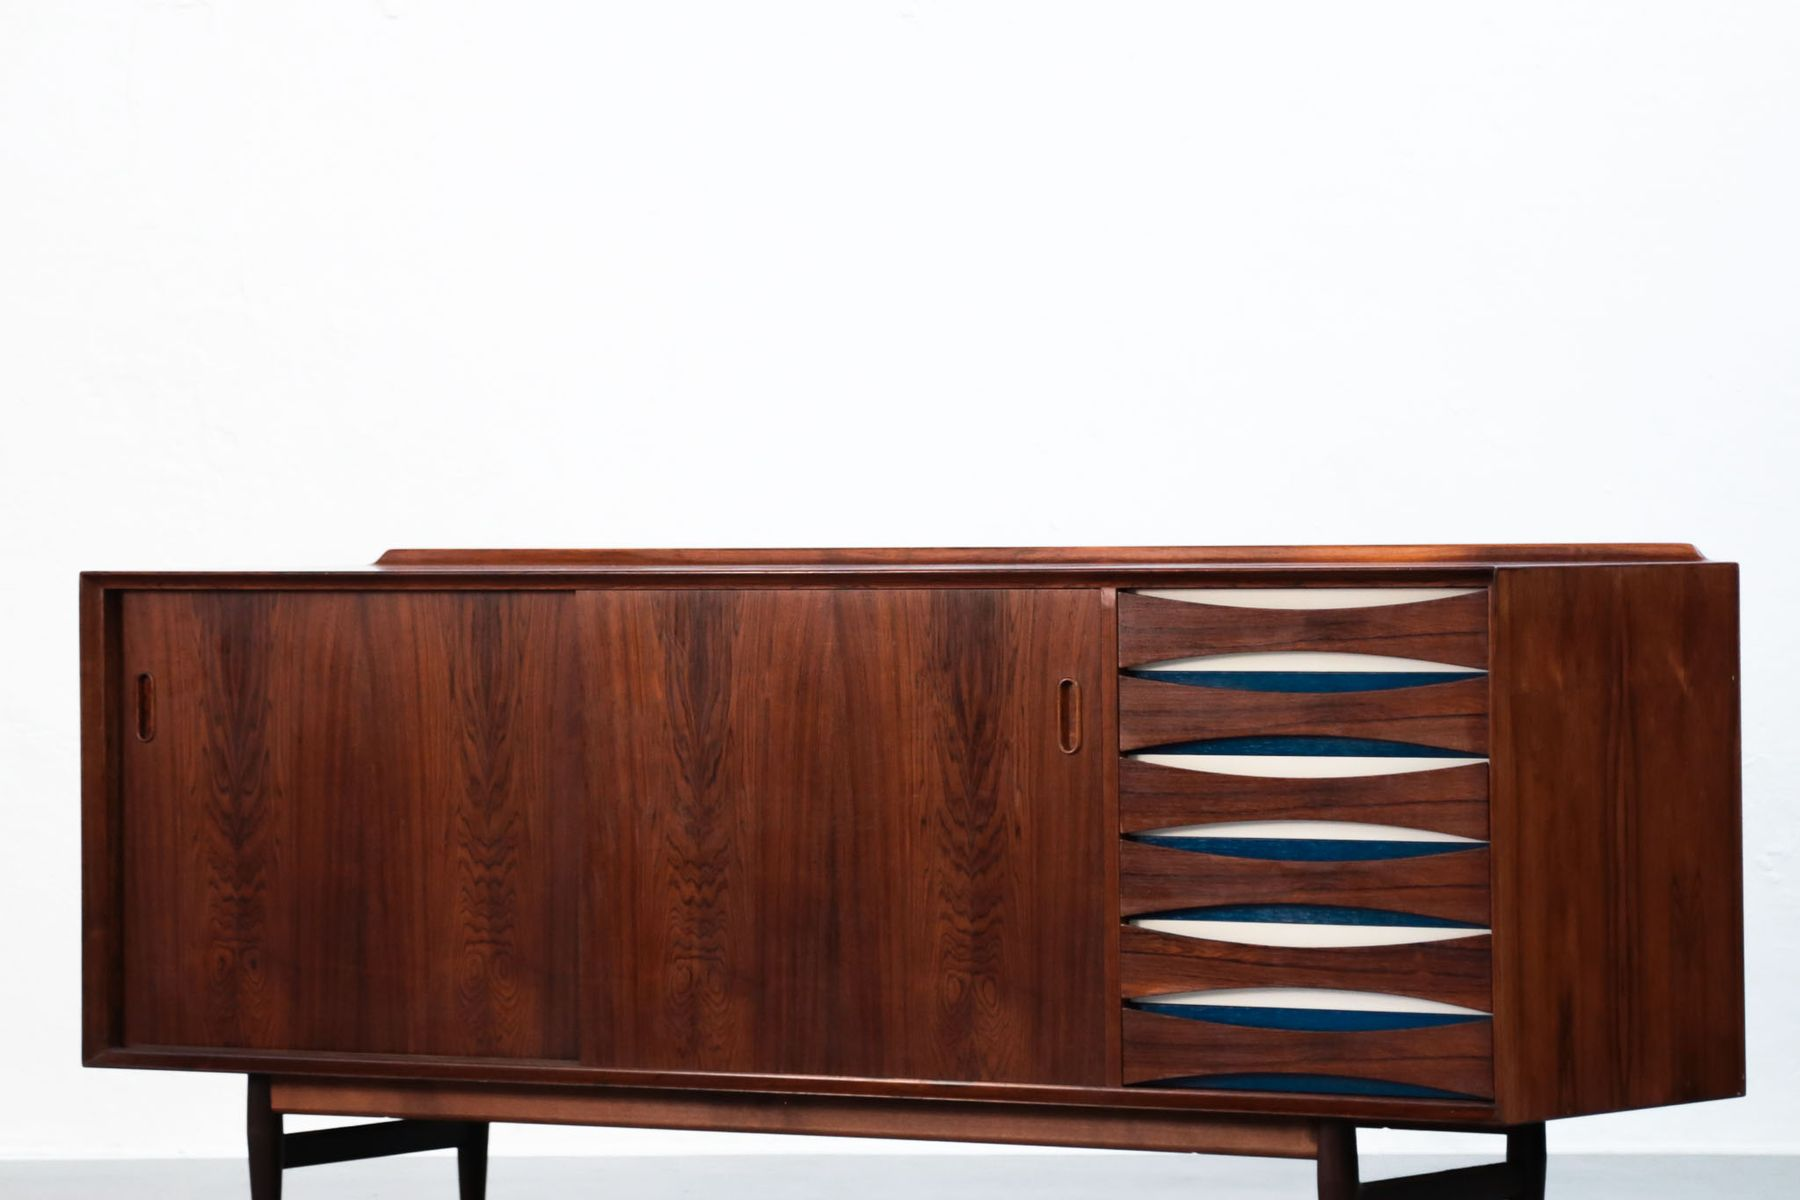 d nisches vintage sideboard von arne vodder f r sibast bei pamono kaufen. Black Bedroom Furniture Sets. Home Design Ideas